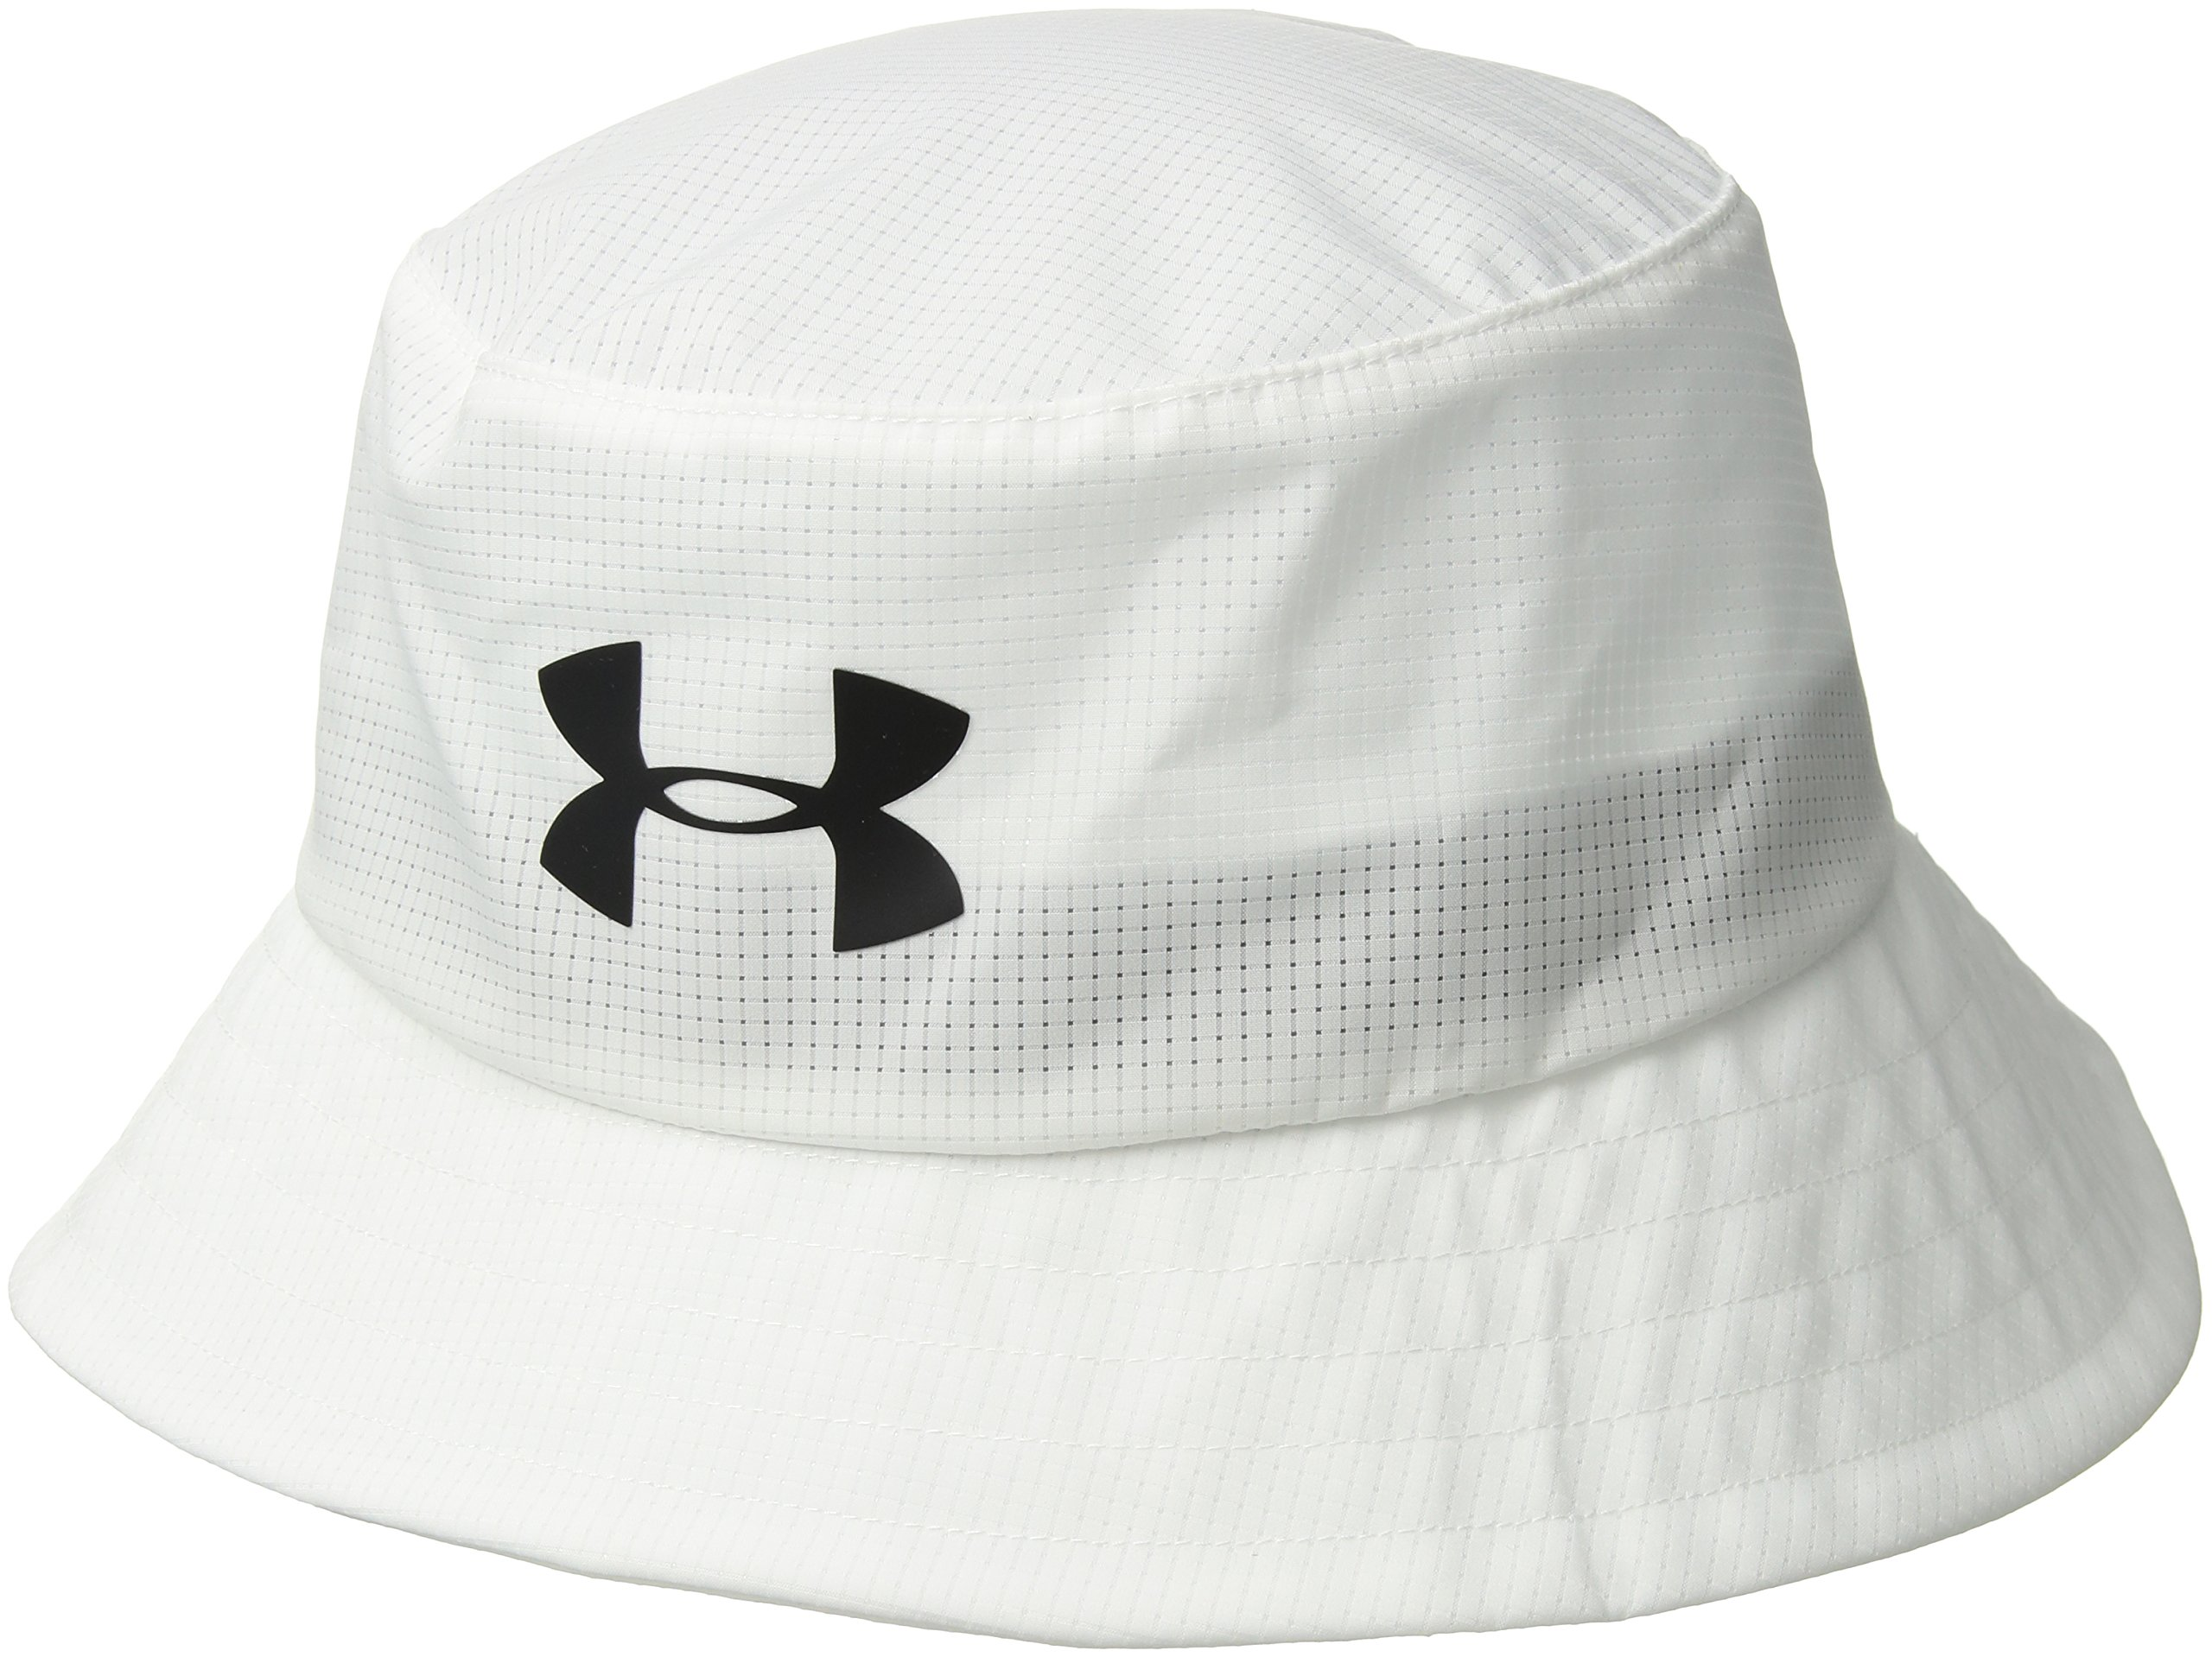 Under Armour Men's Storm Golf Bucket Hat, White (101)/Black, Large